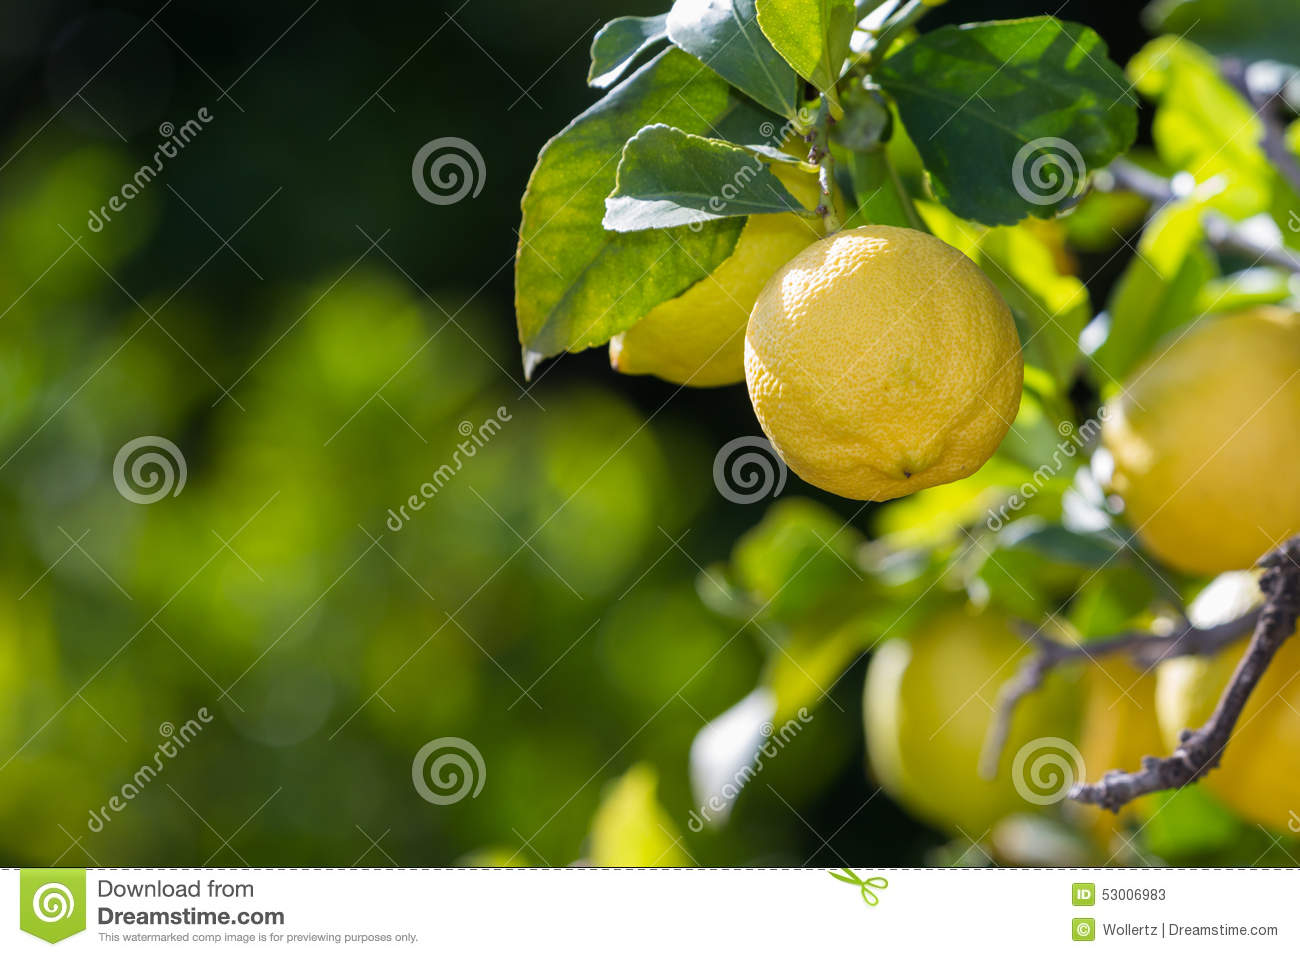 Lemons in California